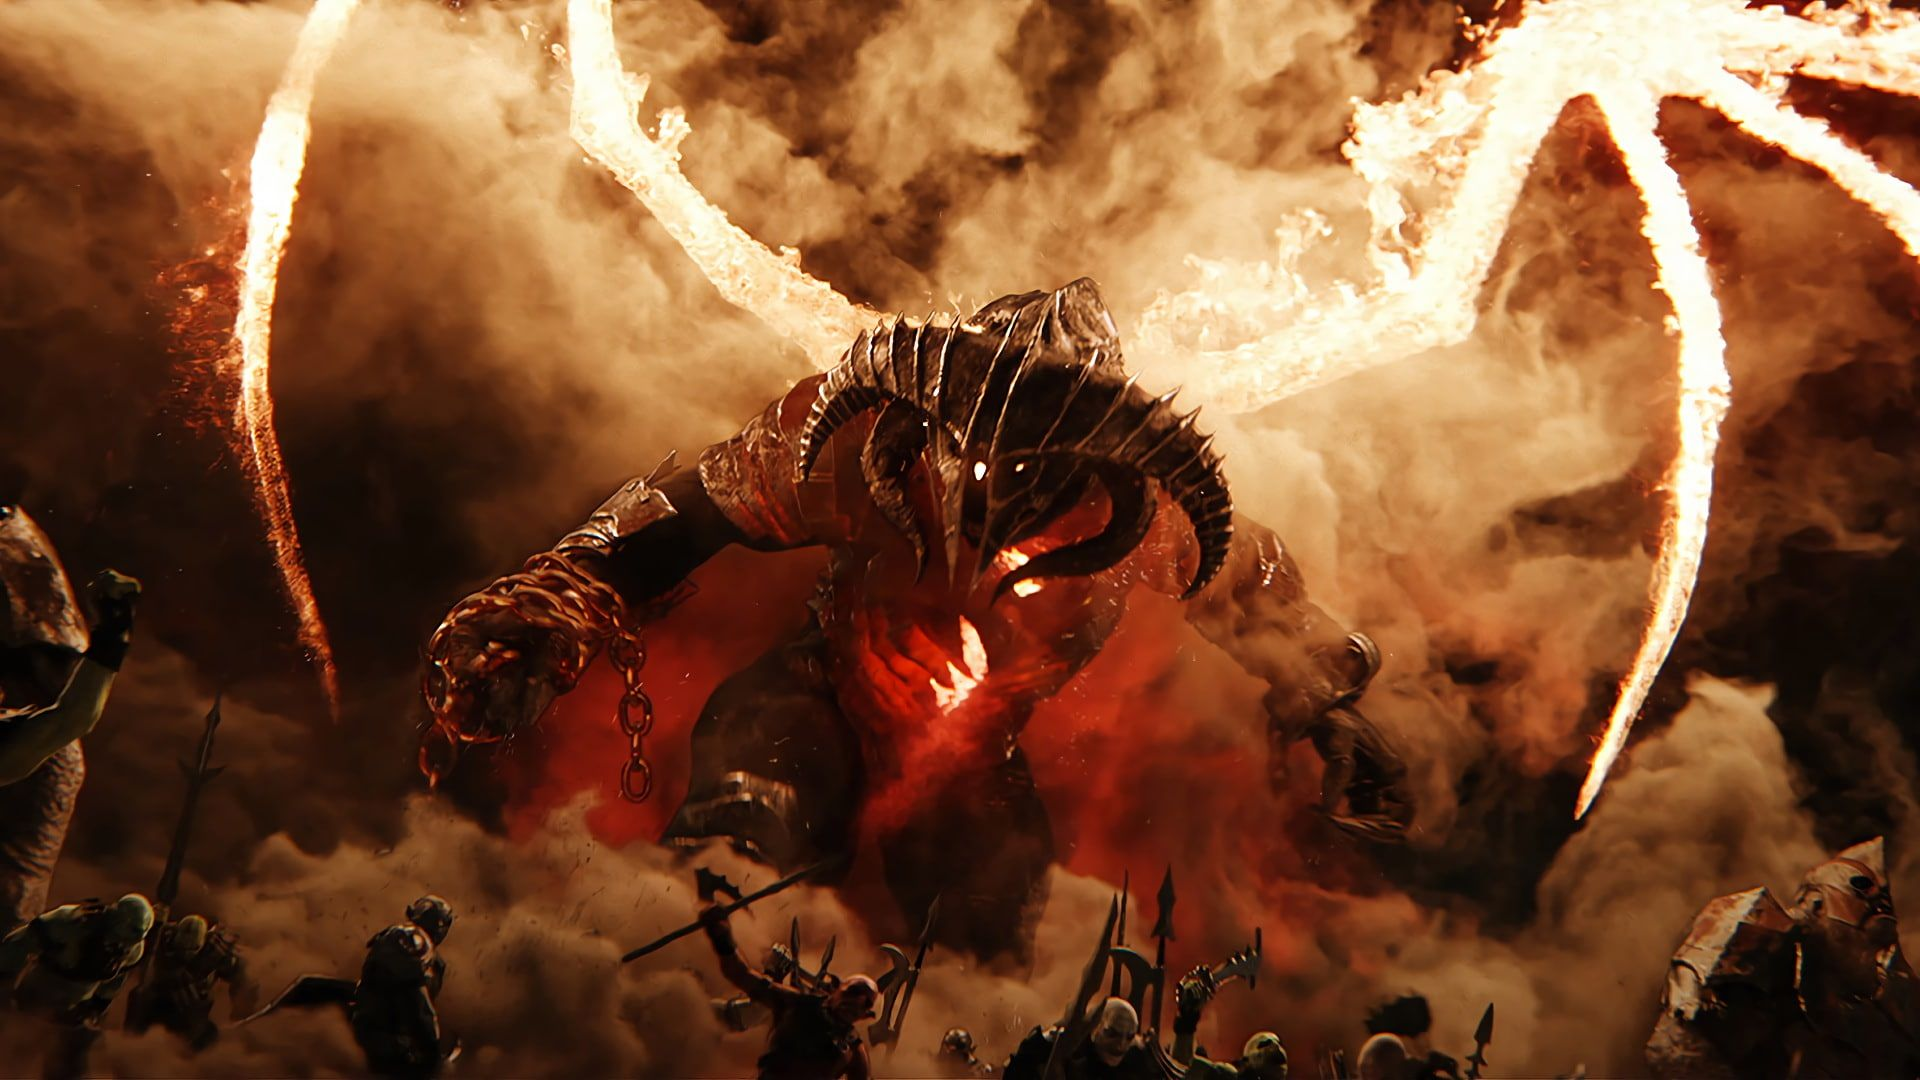 Video Games Balrog Middle Earth Shadow Of War 1080p Wallpaper Hdwallpaper Desktop In 2020 Middle Earth Shadow Shadow Of Mordor Middle Earth